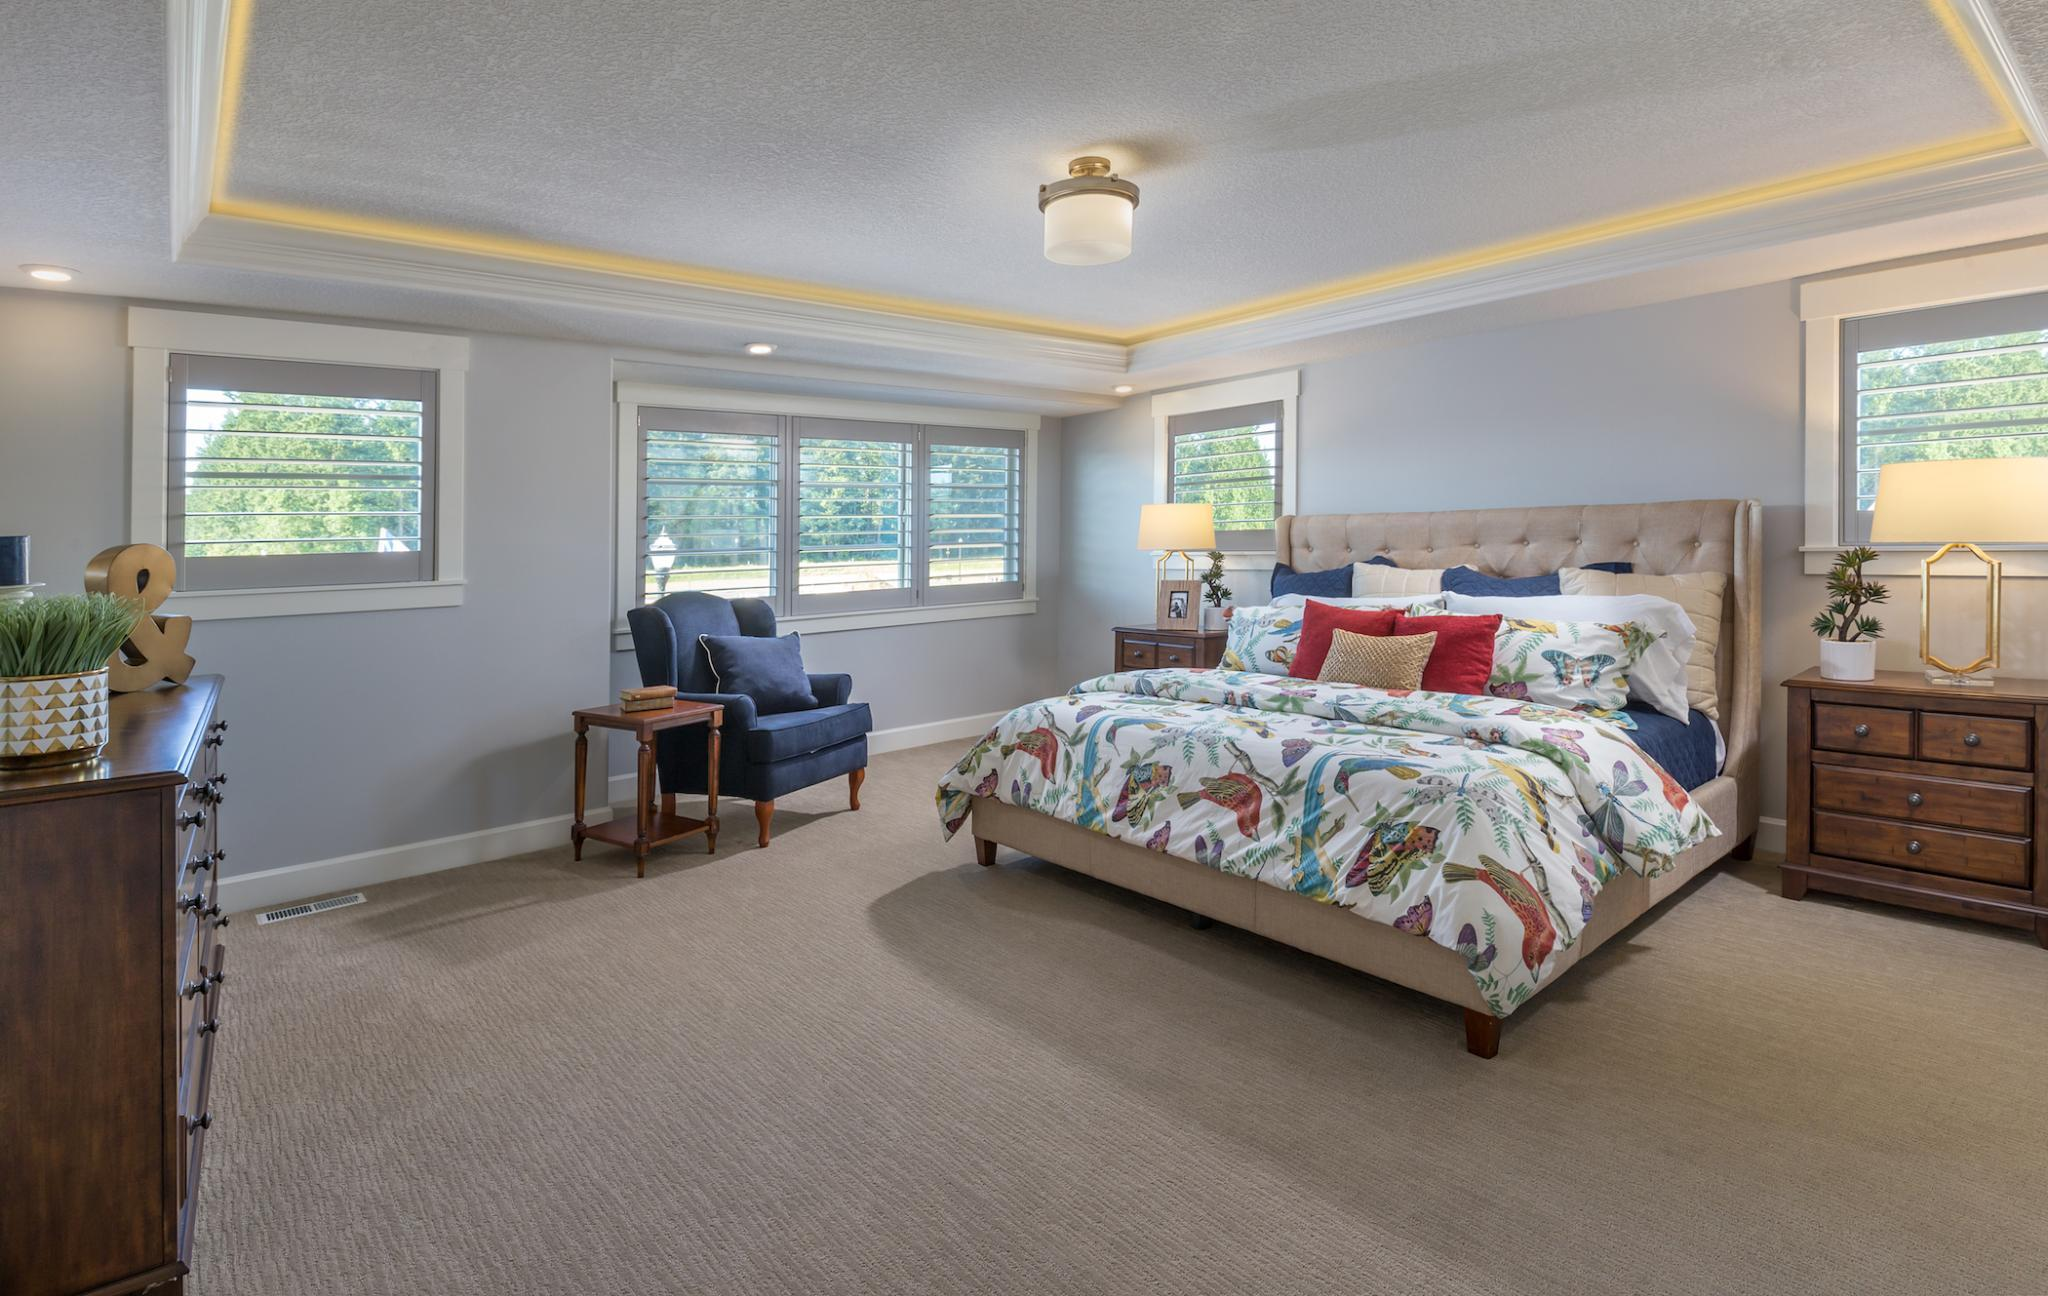 Bedroom featured in the Laurelhurst By New Tradition Homes in Richland, WA